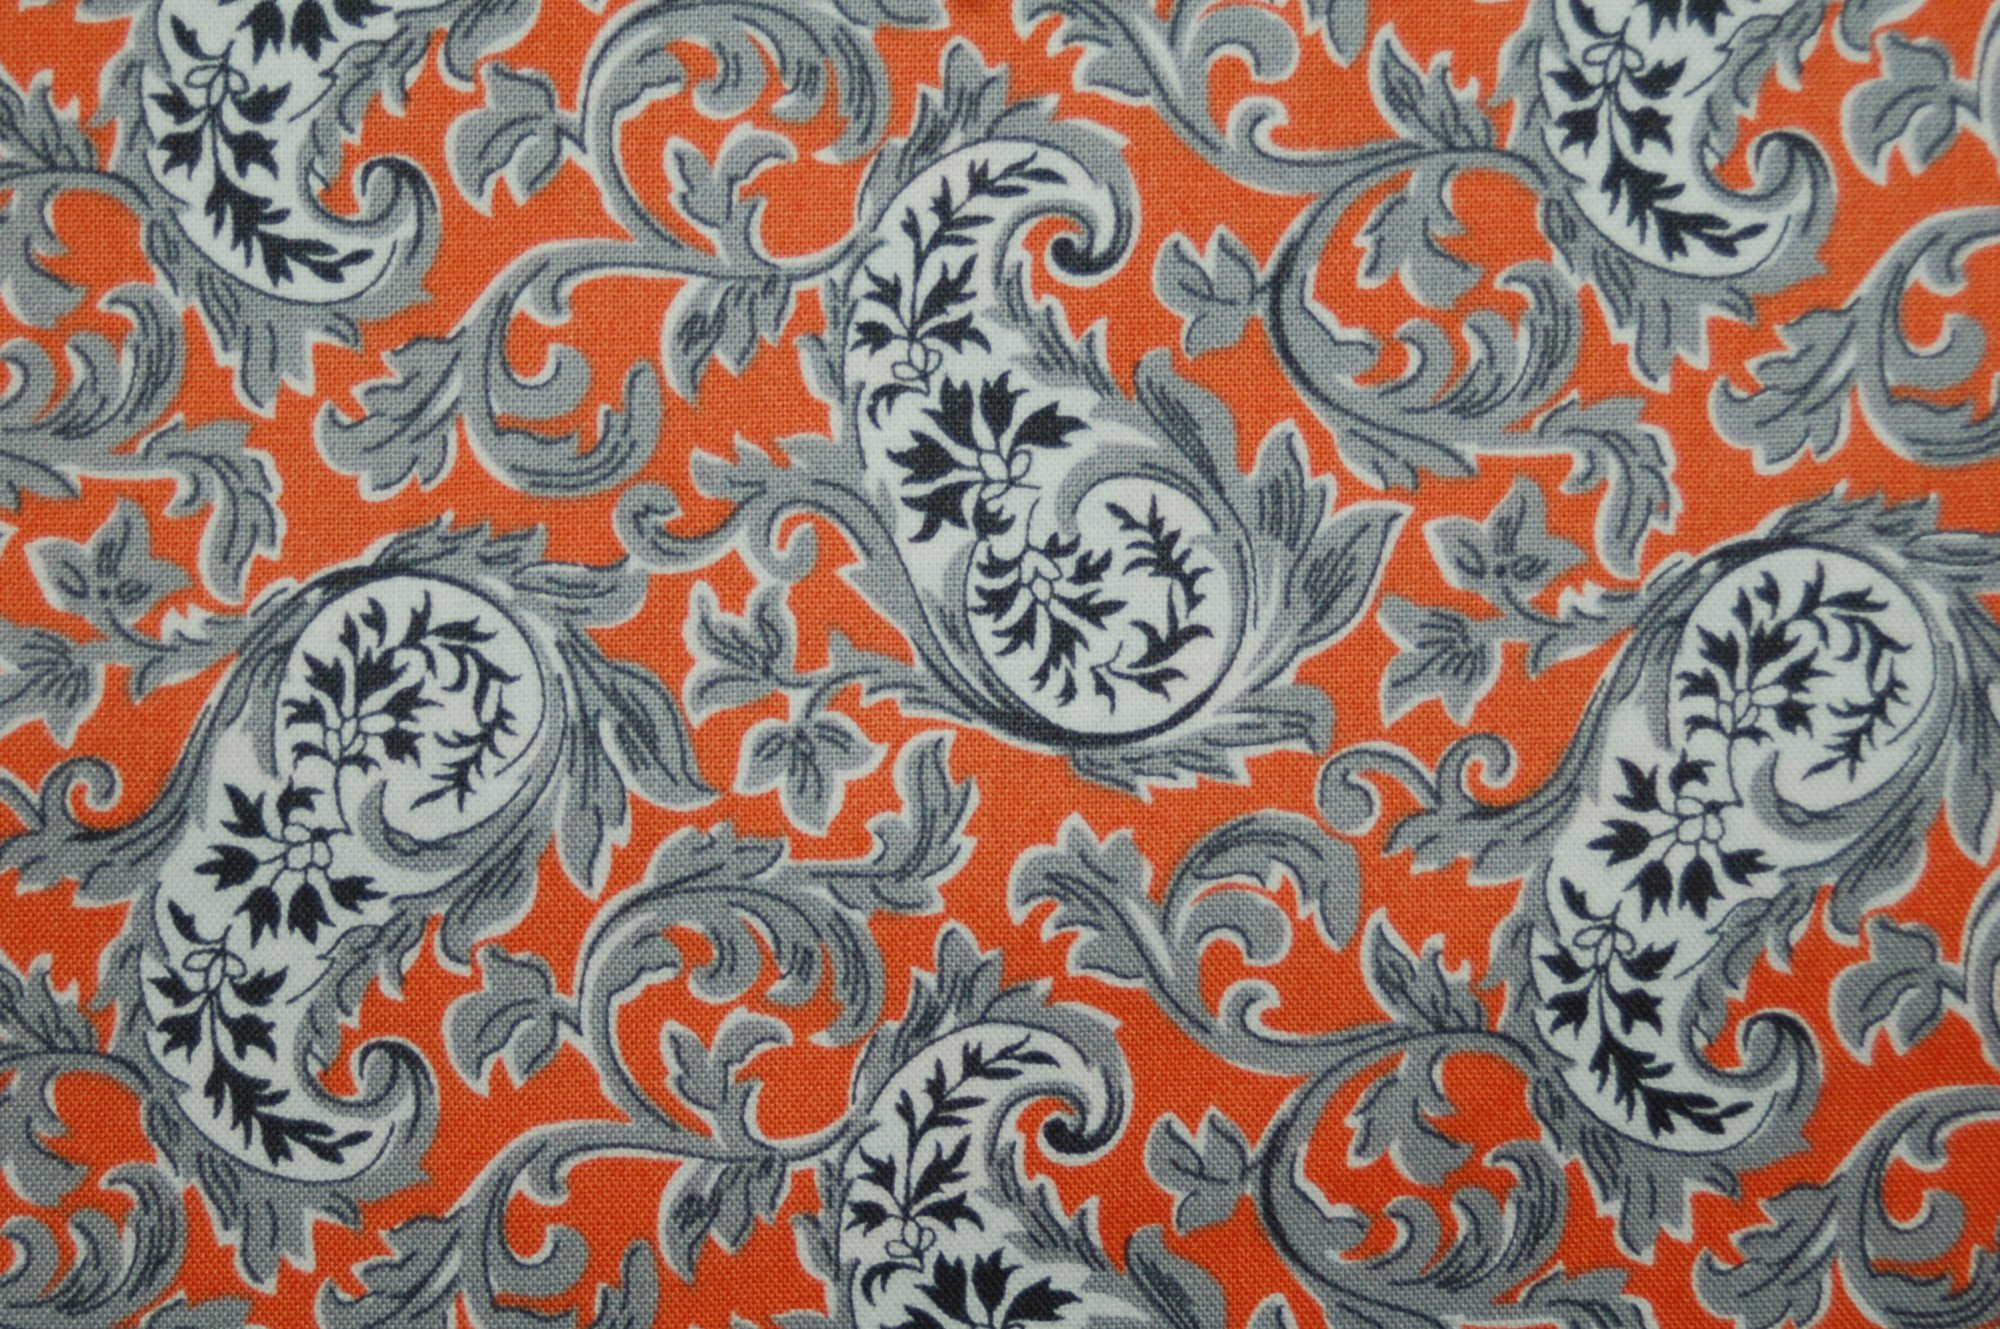 Candelabra - Paisley Potion (Orange) from Verna Mosquera for Free Spirit Designs